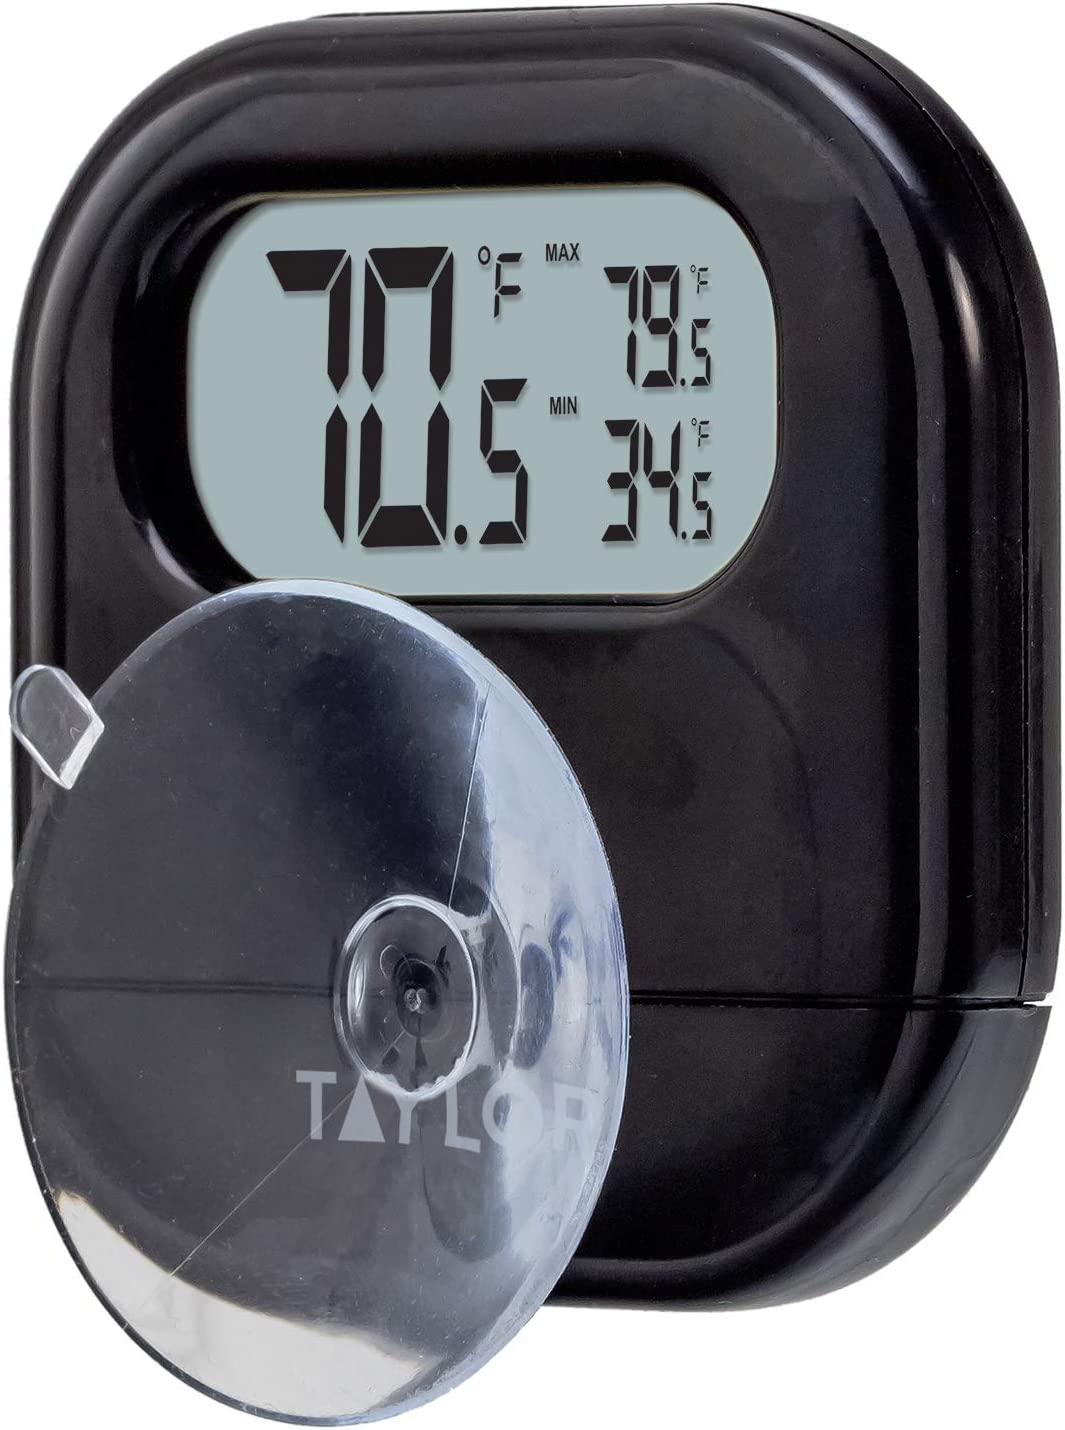 Taylor Precision Products Digital Indoor/Outdoor Thermometer with Reversible Suction Cup